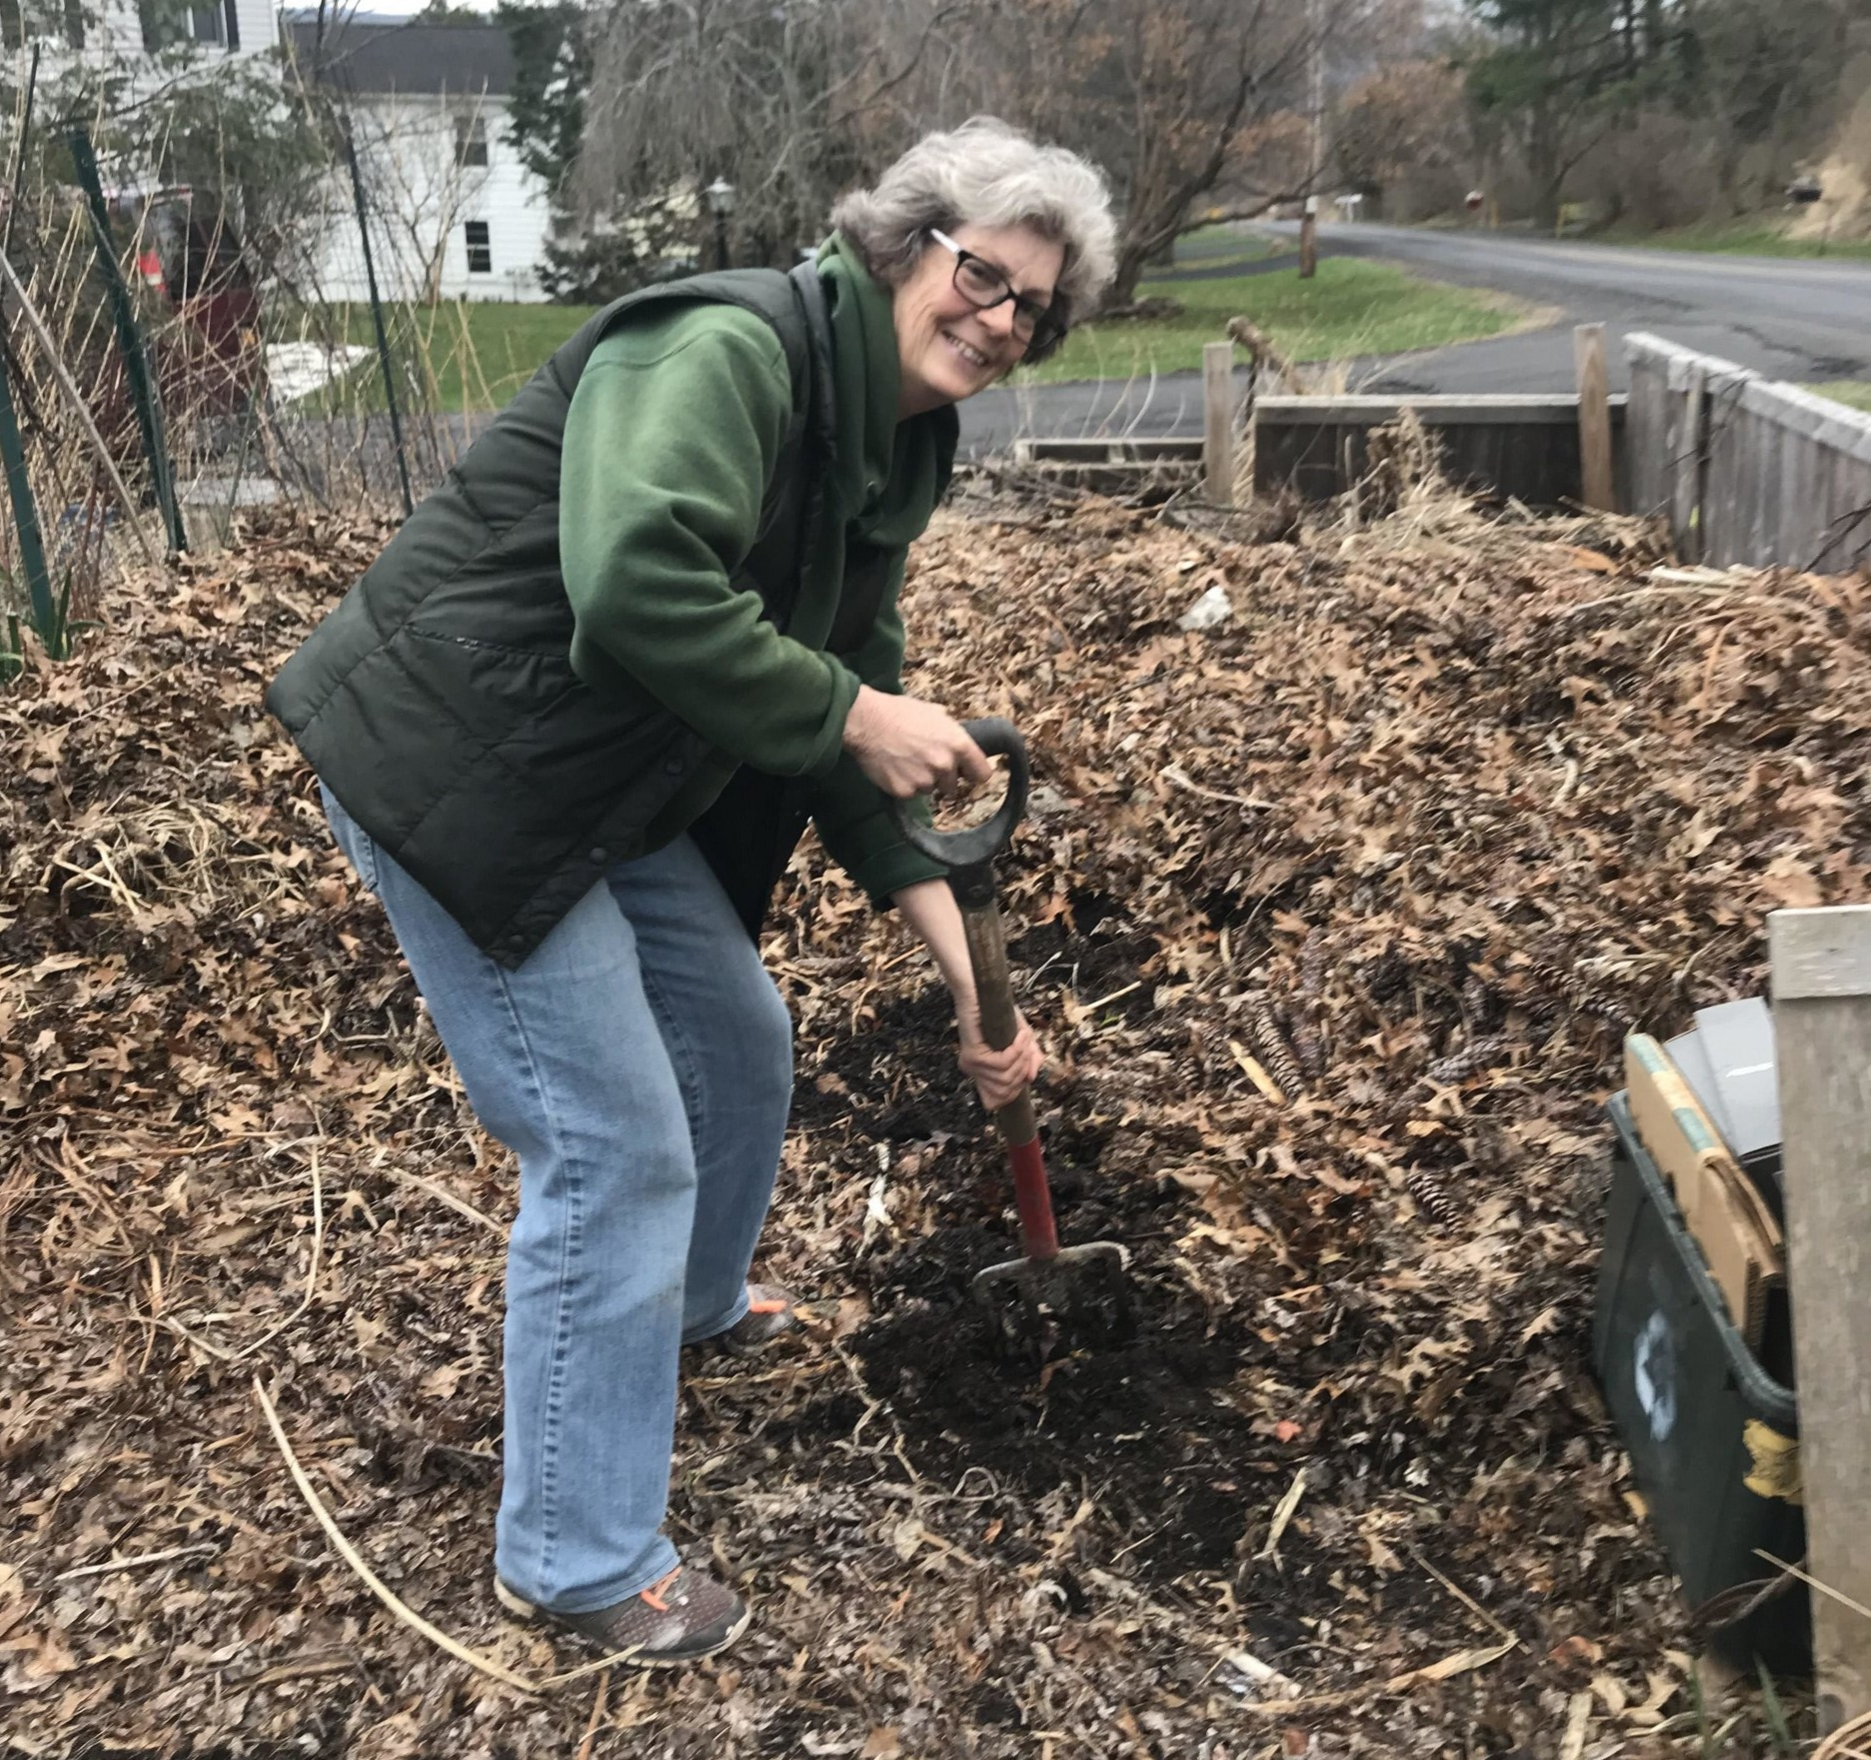 Pat Dutt works on her compost pile. Photo Courtesy of Laura Komor.